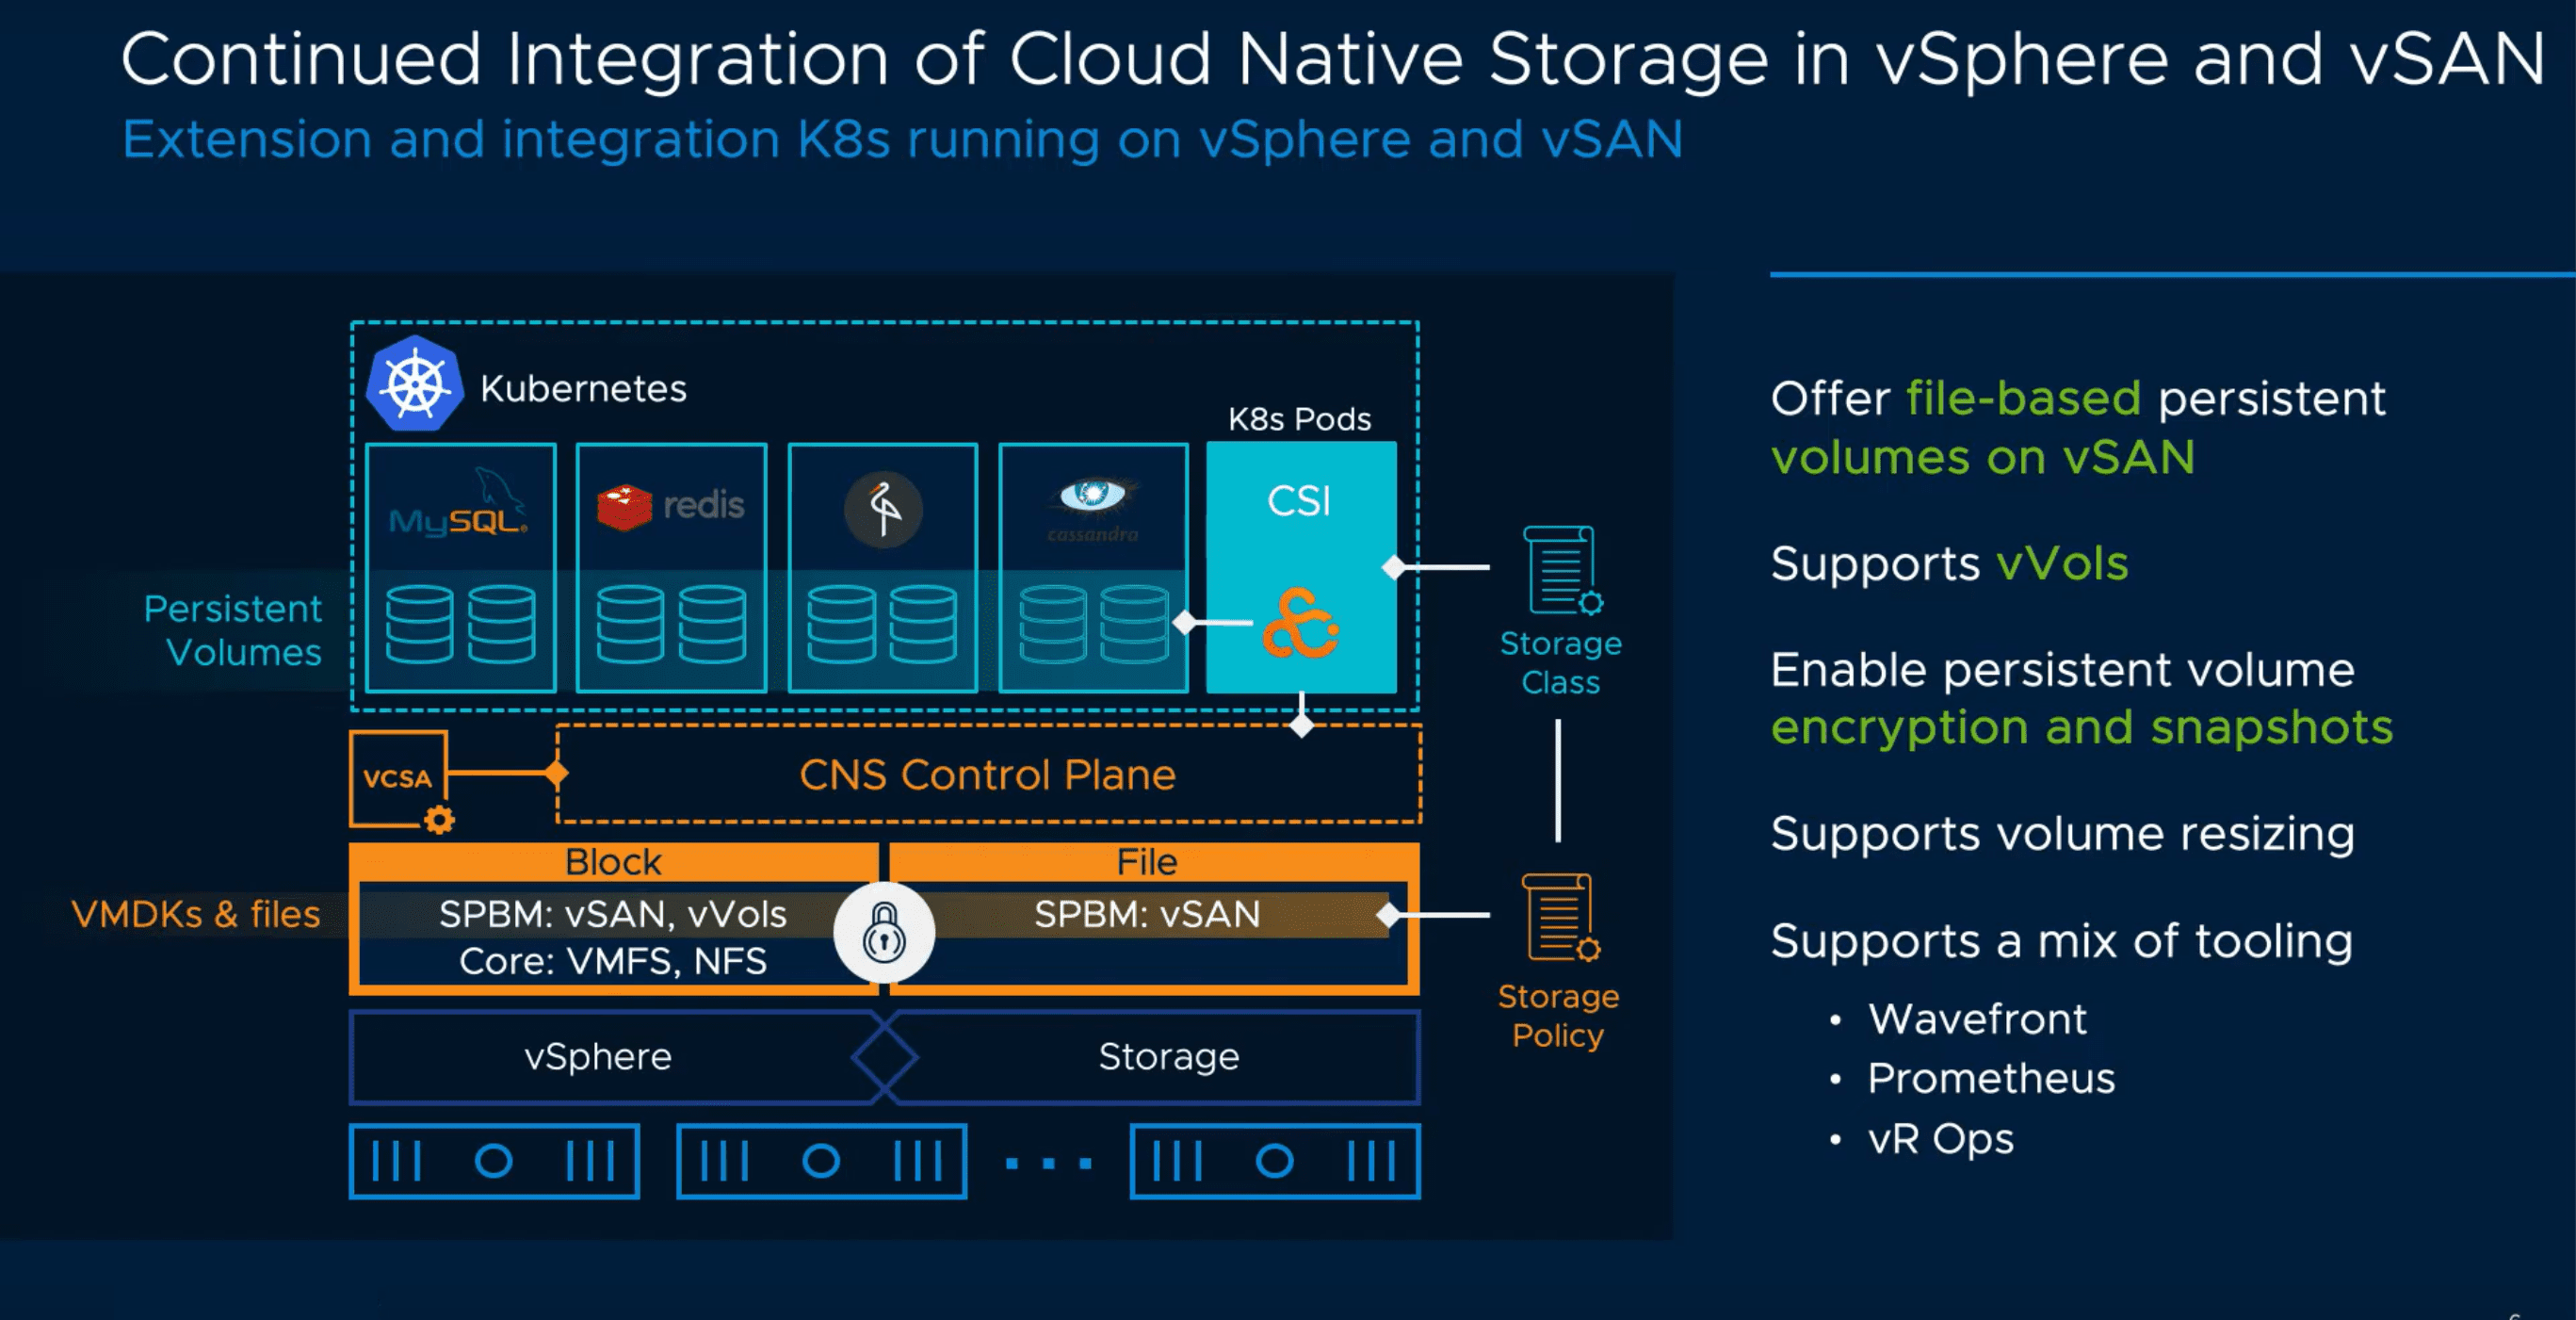 Cloud-Native-Storage-in-vSphere-nad-vSAN-7.0 VMware vSAN 7.0 New Features and Capabilities